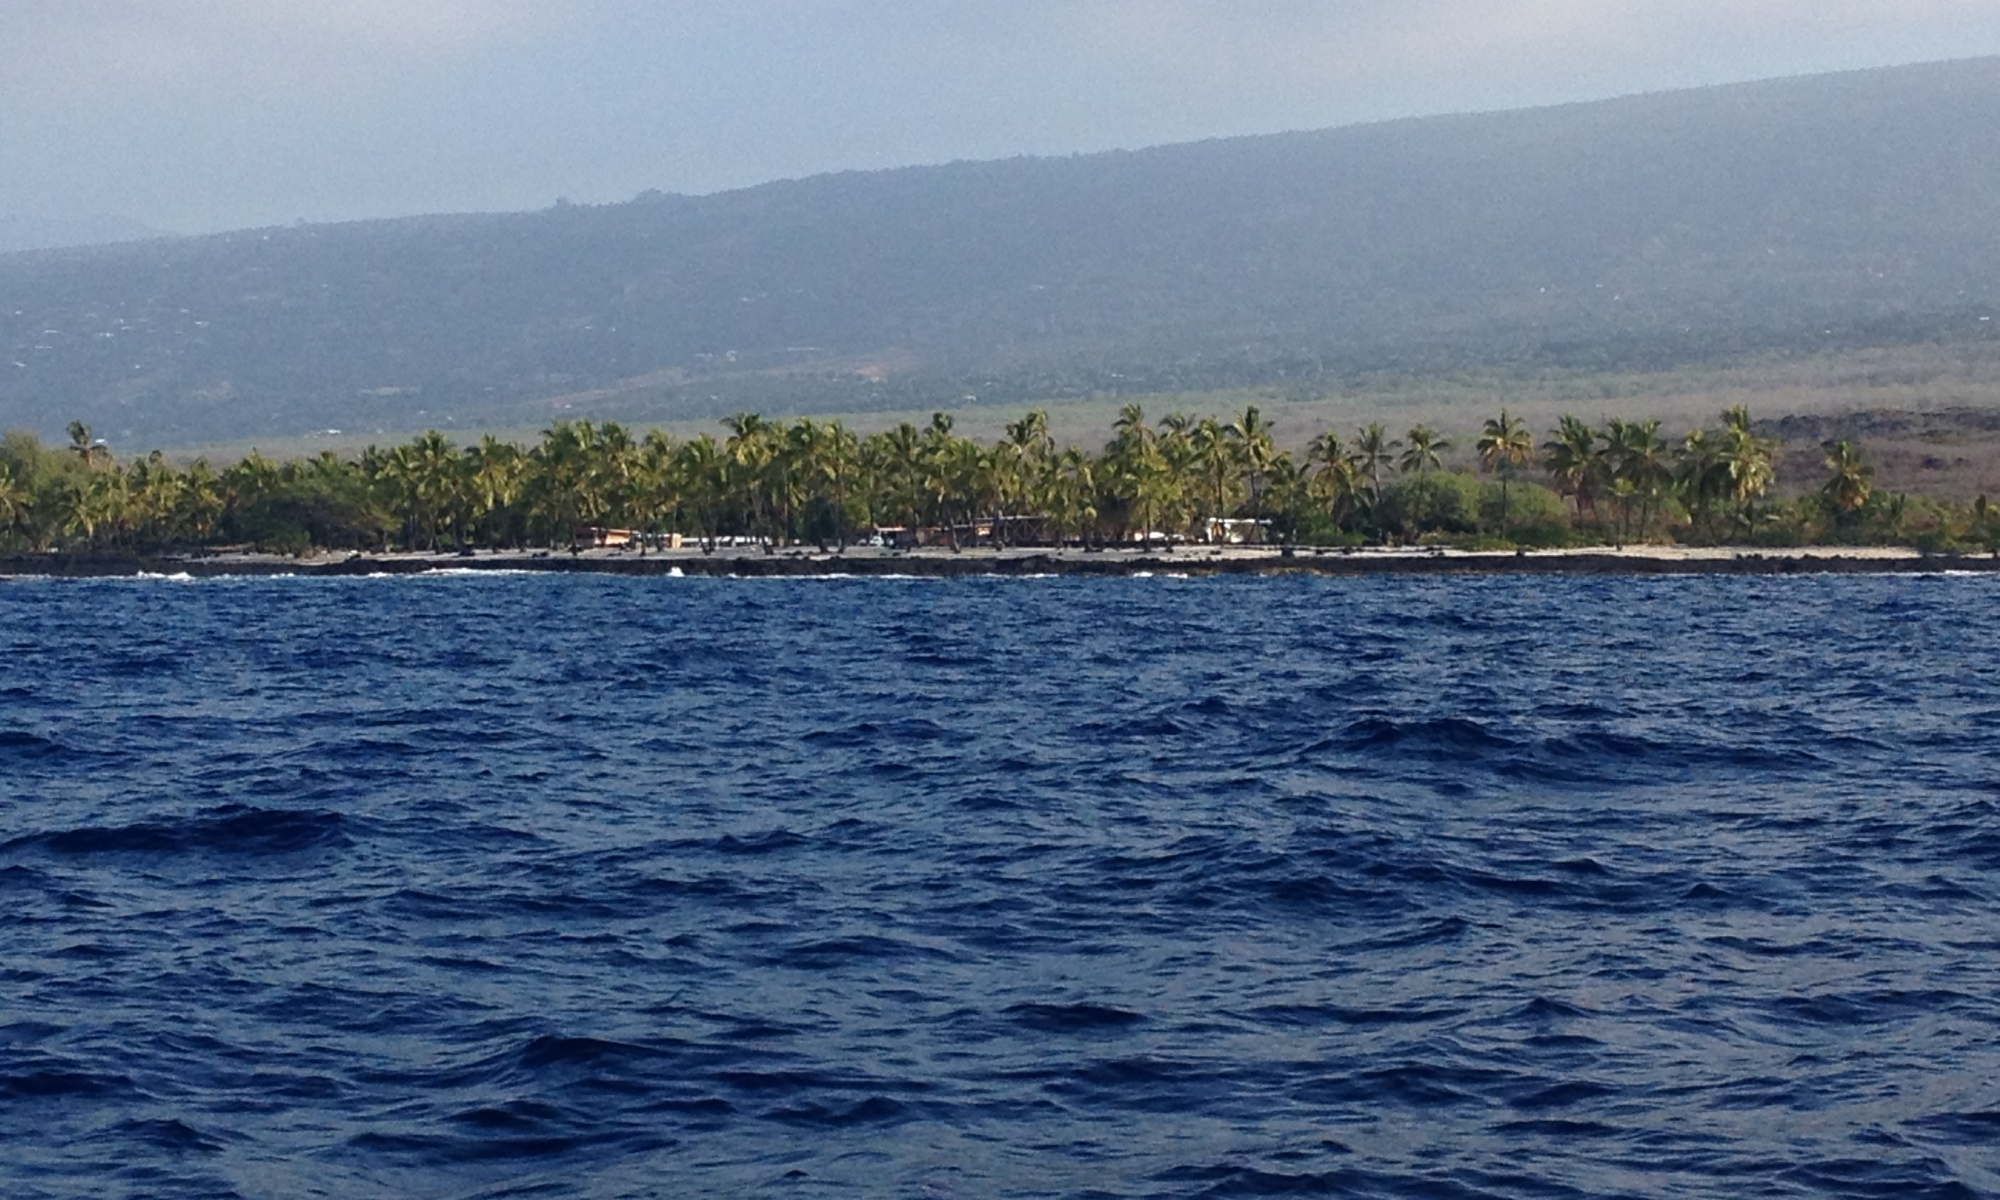 Big Island from sea